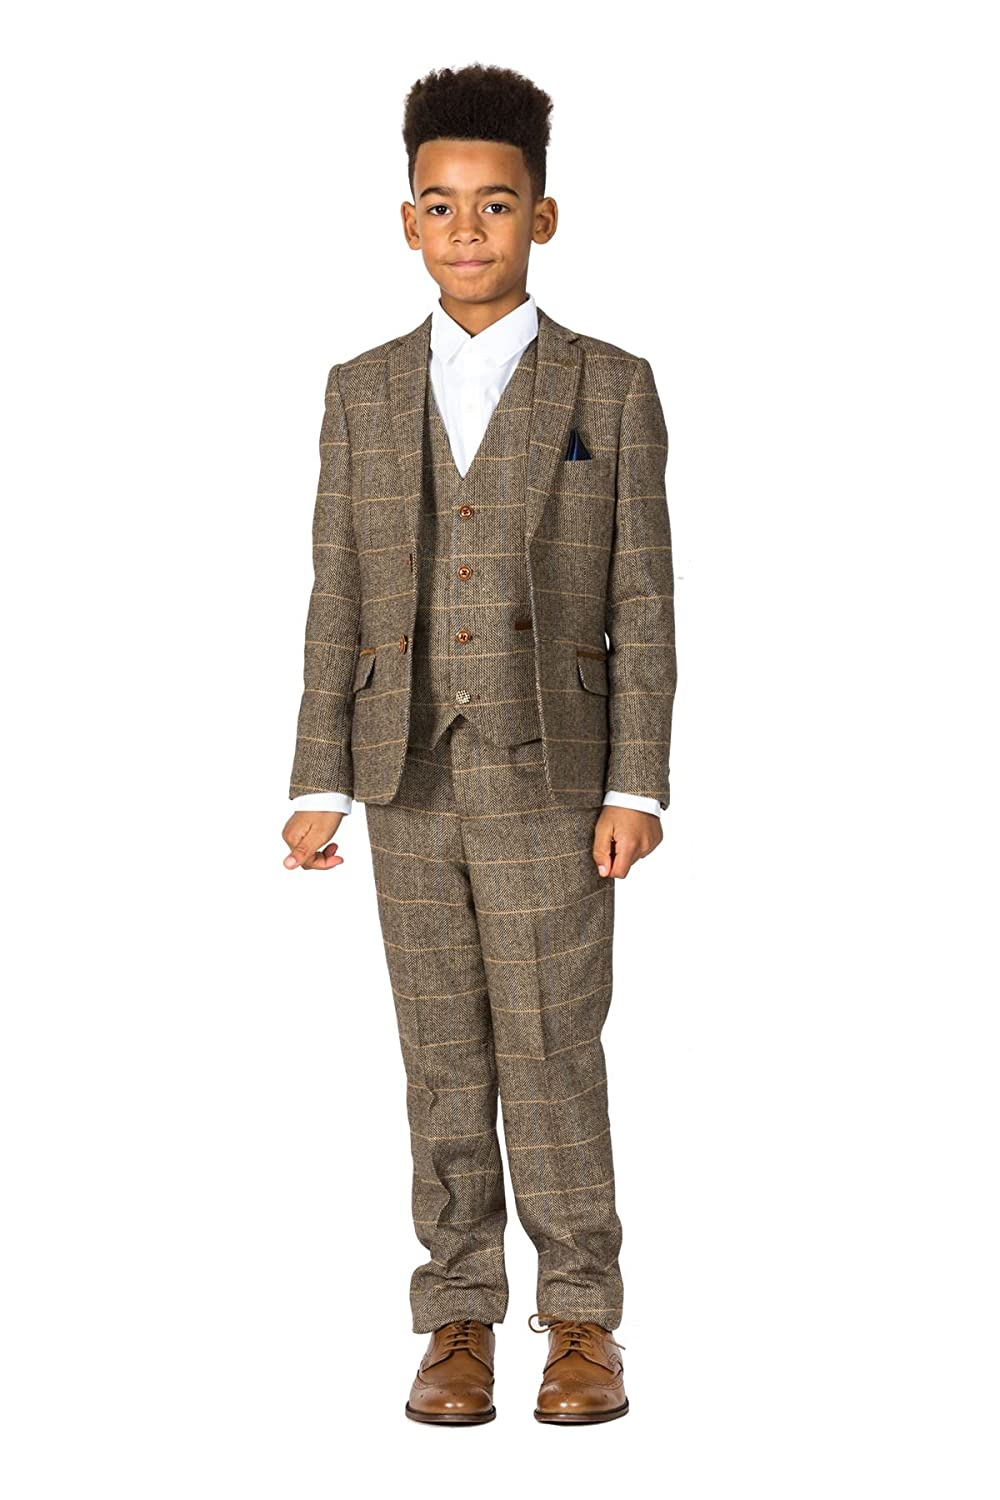 1930s Childrens Fashion: Girls, Boys, Toddler, Baby Costumes Marc Darcy Boys Tan Green Tweed Suit and Wedding Suit for Page Boy Or Prom Party 1-14 Years | Wedding Suits  AT vintagedancer.com